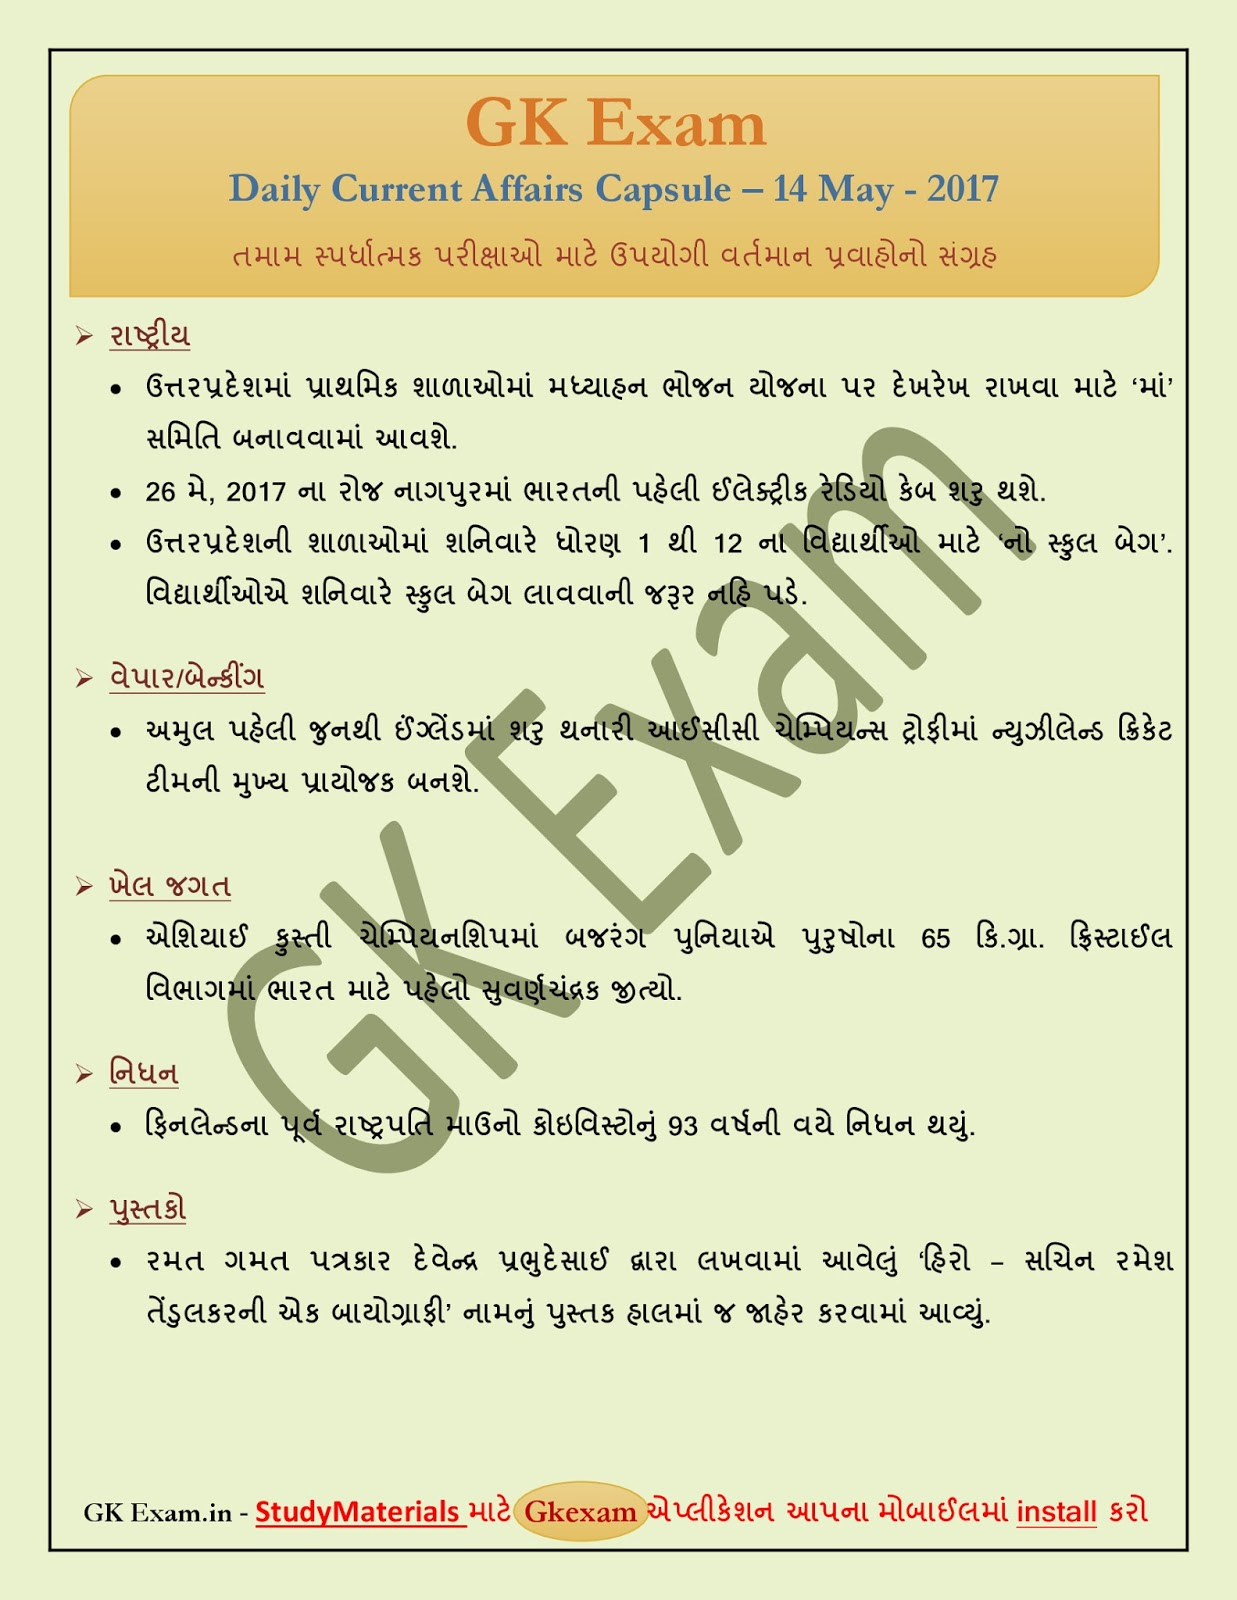 DATE WISE CURRENT AFFAIRS EBOOK DOWNLOAD